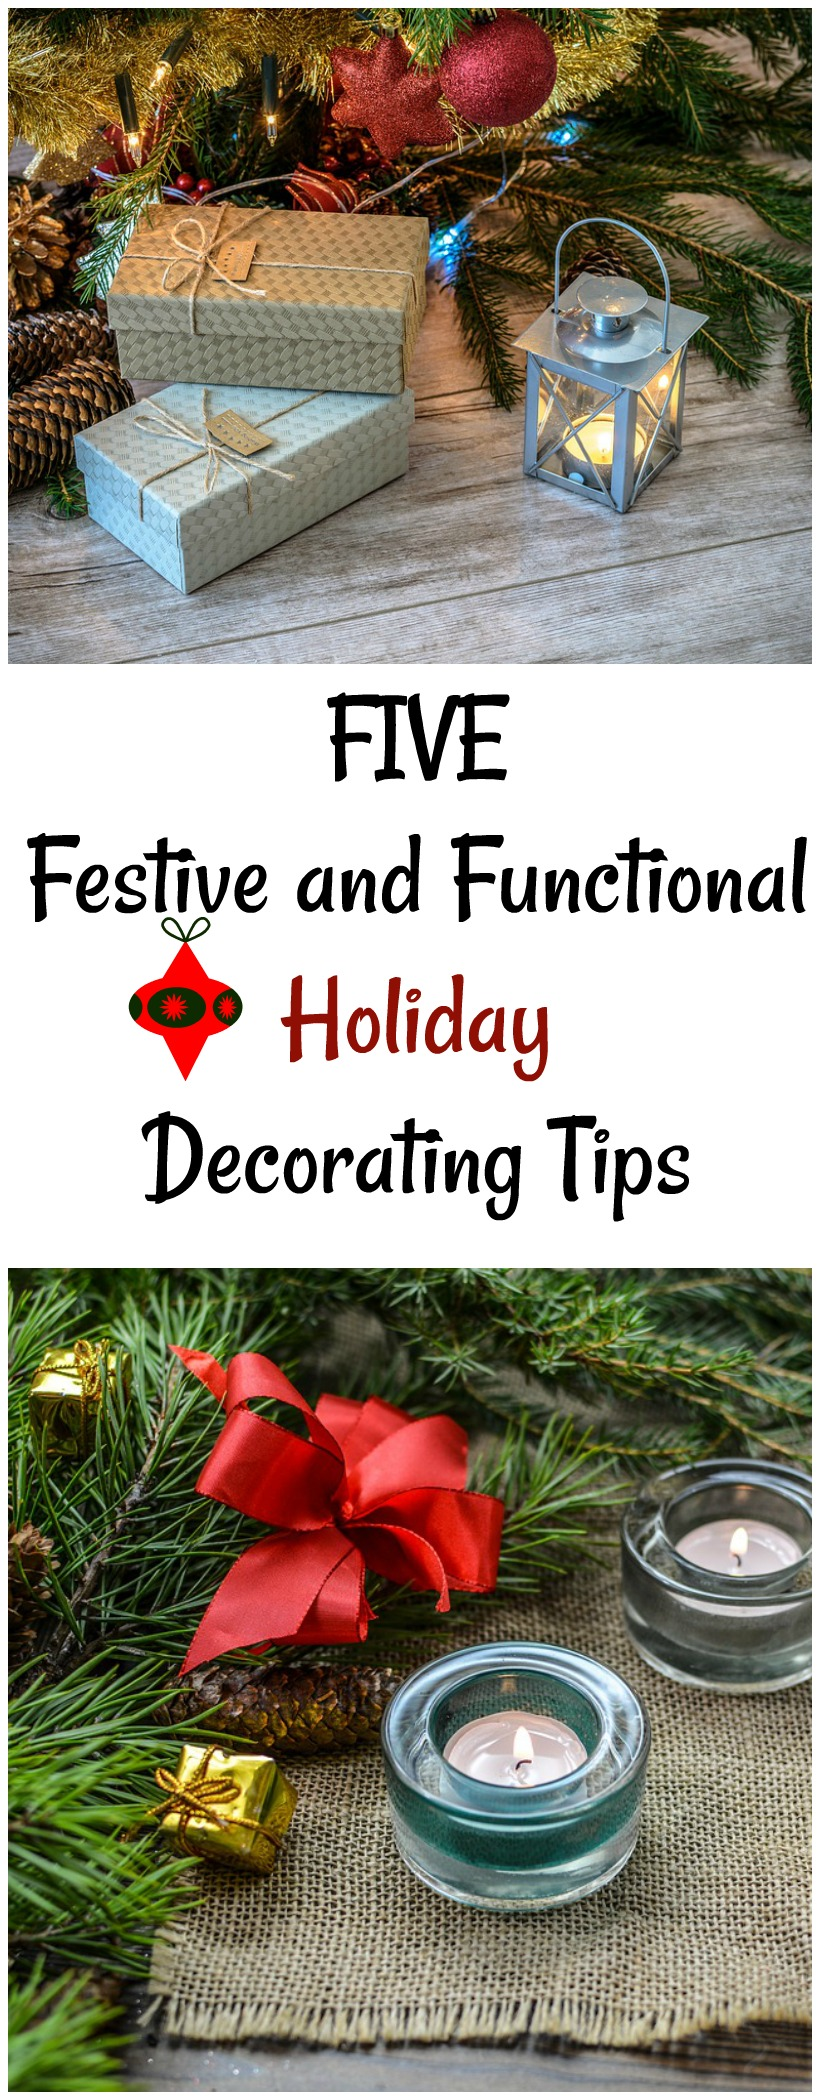 5 Festive and Functional Holiday Decorating Tips on chemistrycachet.com